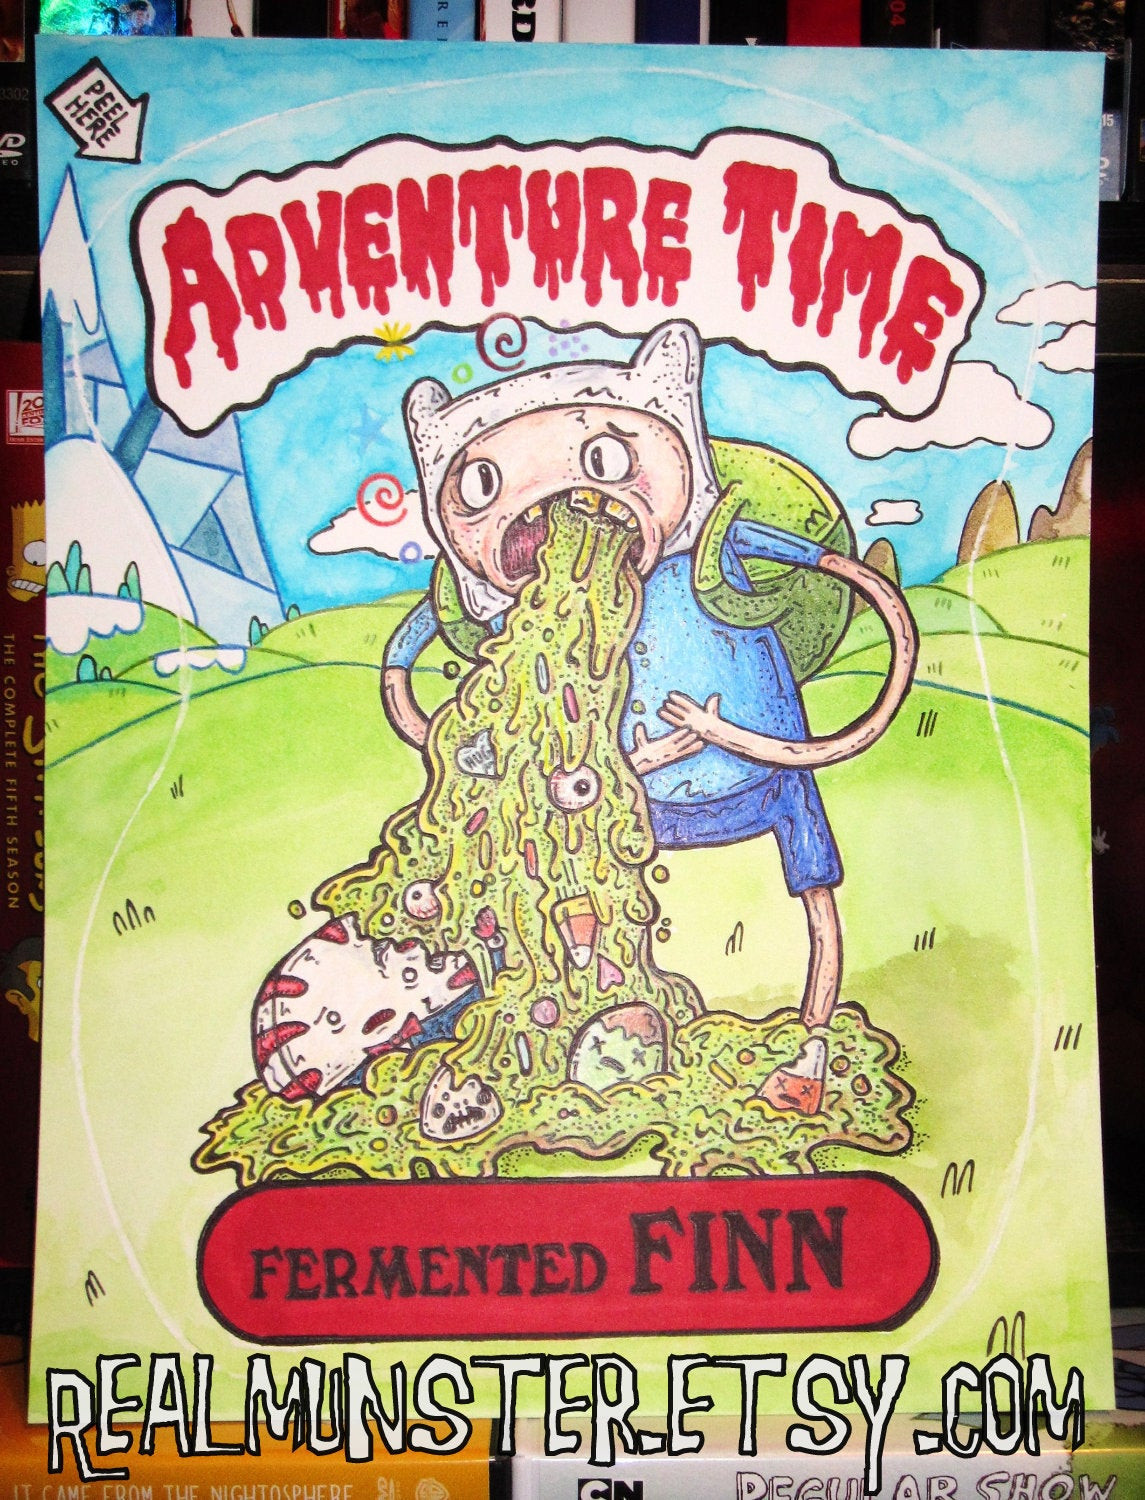 Boys Coloring Pages Garbage Pale Kids  Adventure Time Print Garbage Pail Kids Fermented